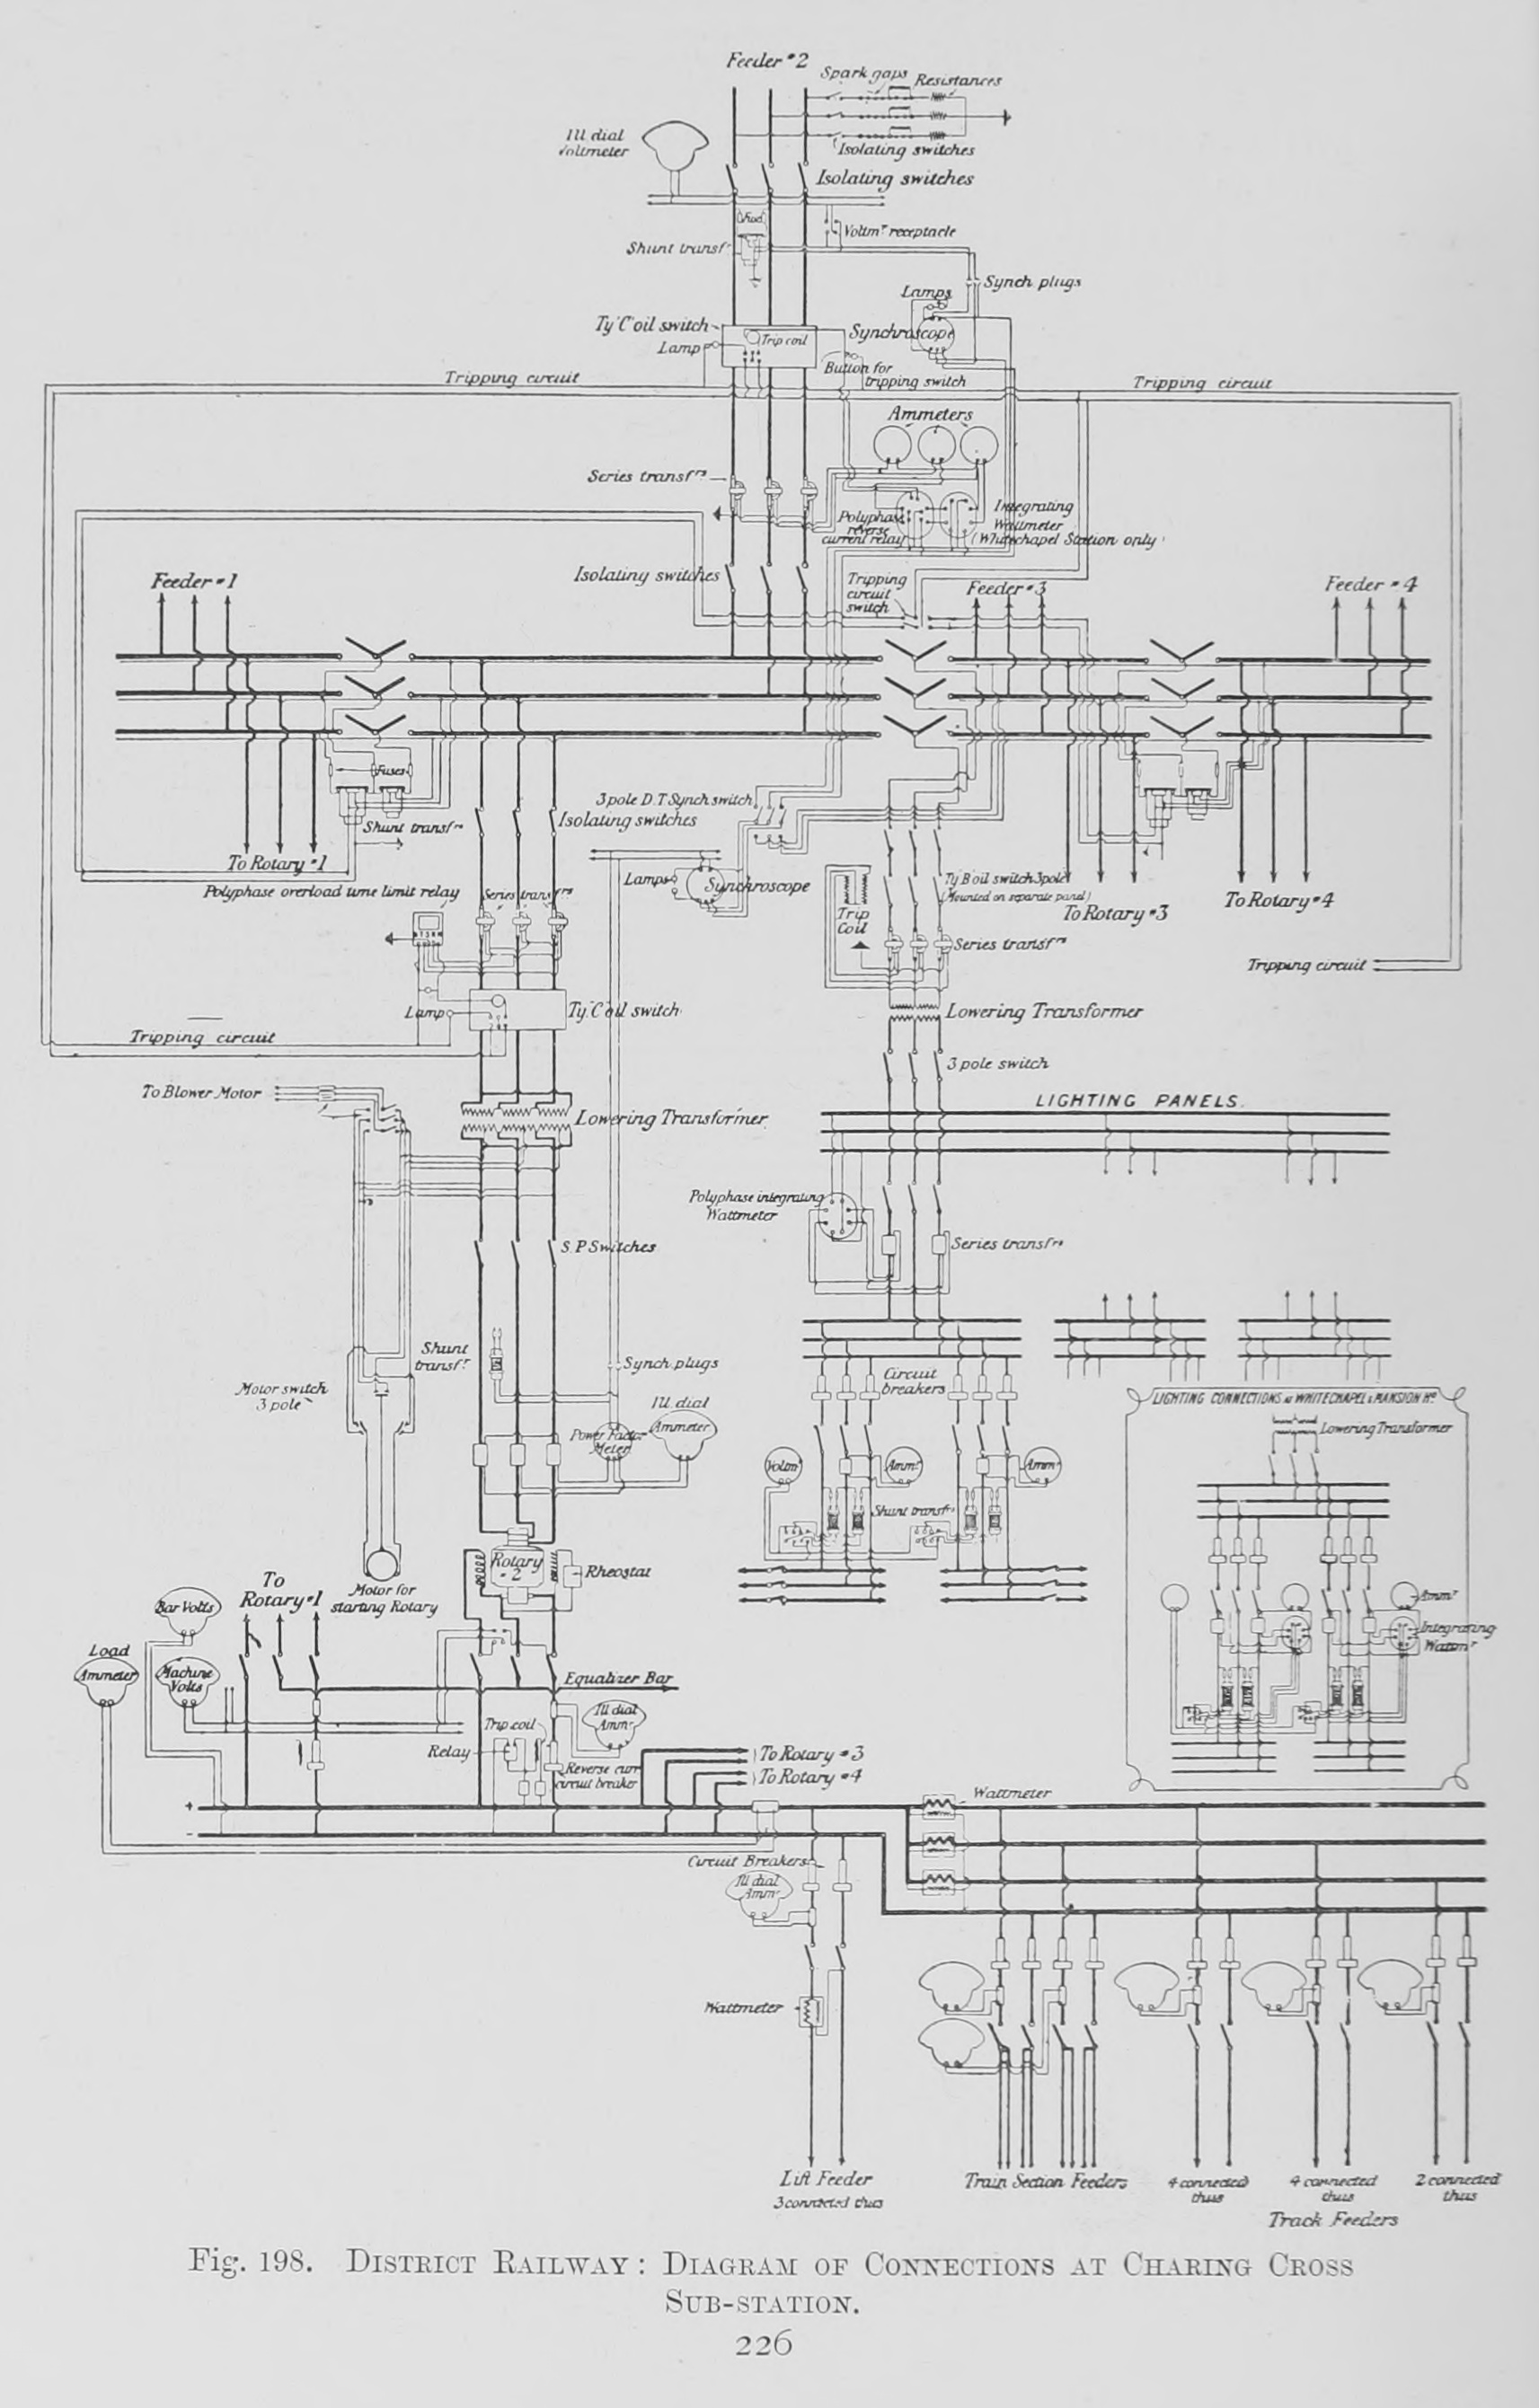 File:198. District Railway - Diagram of Connections at Charing Cross ...